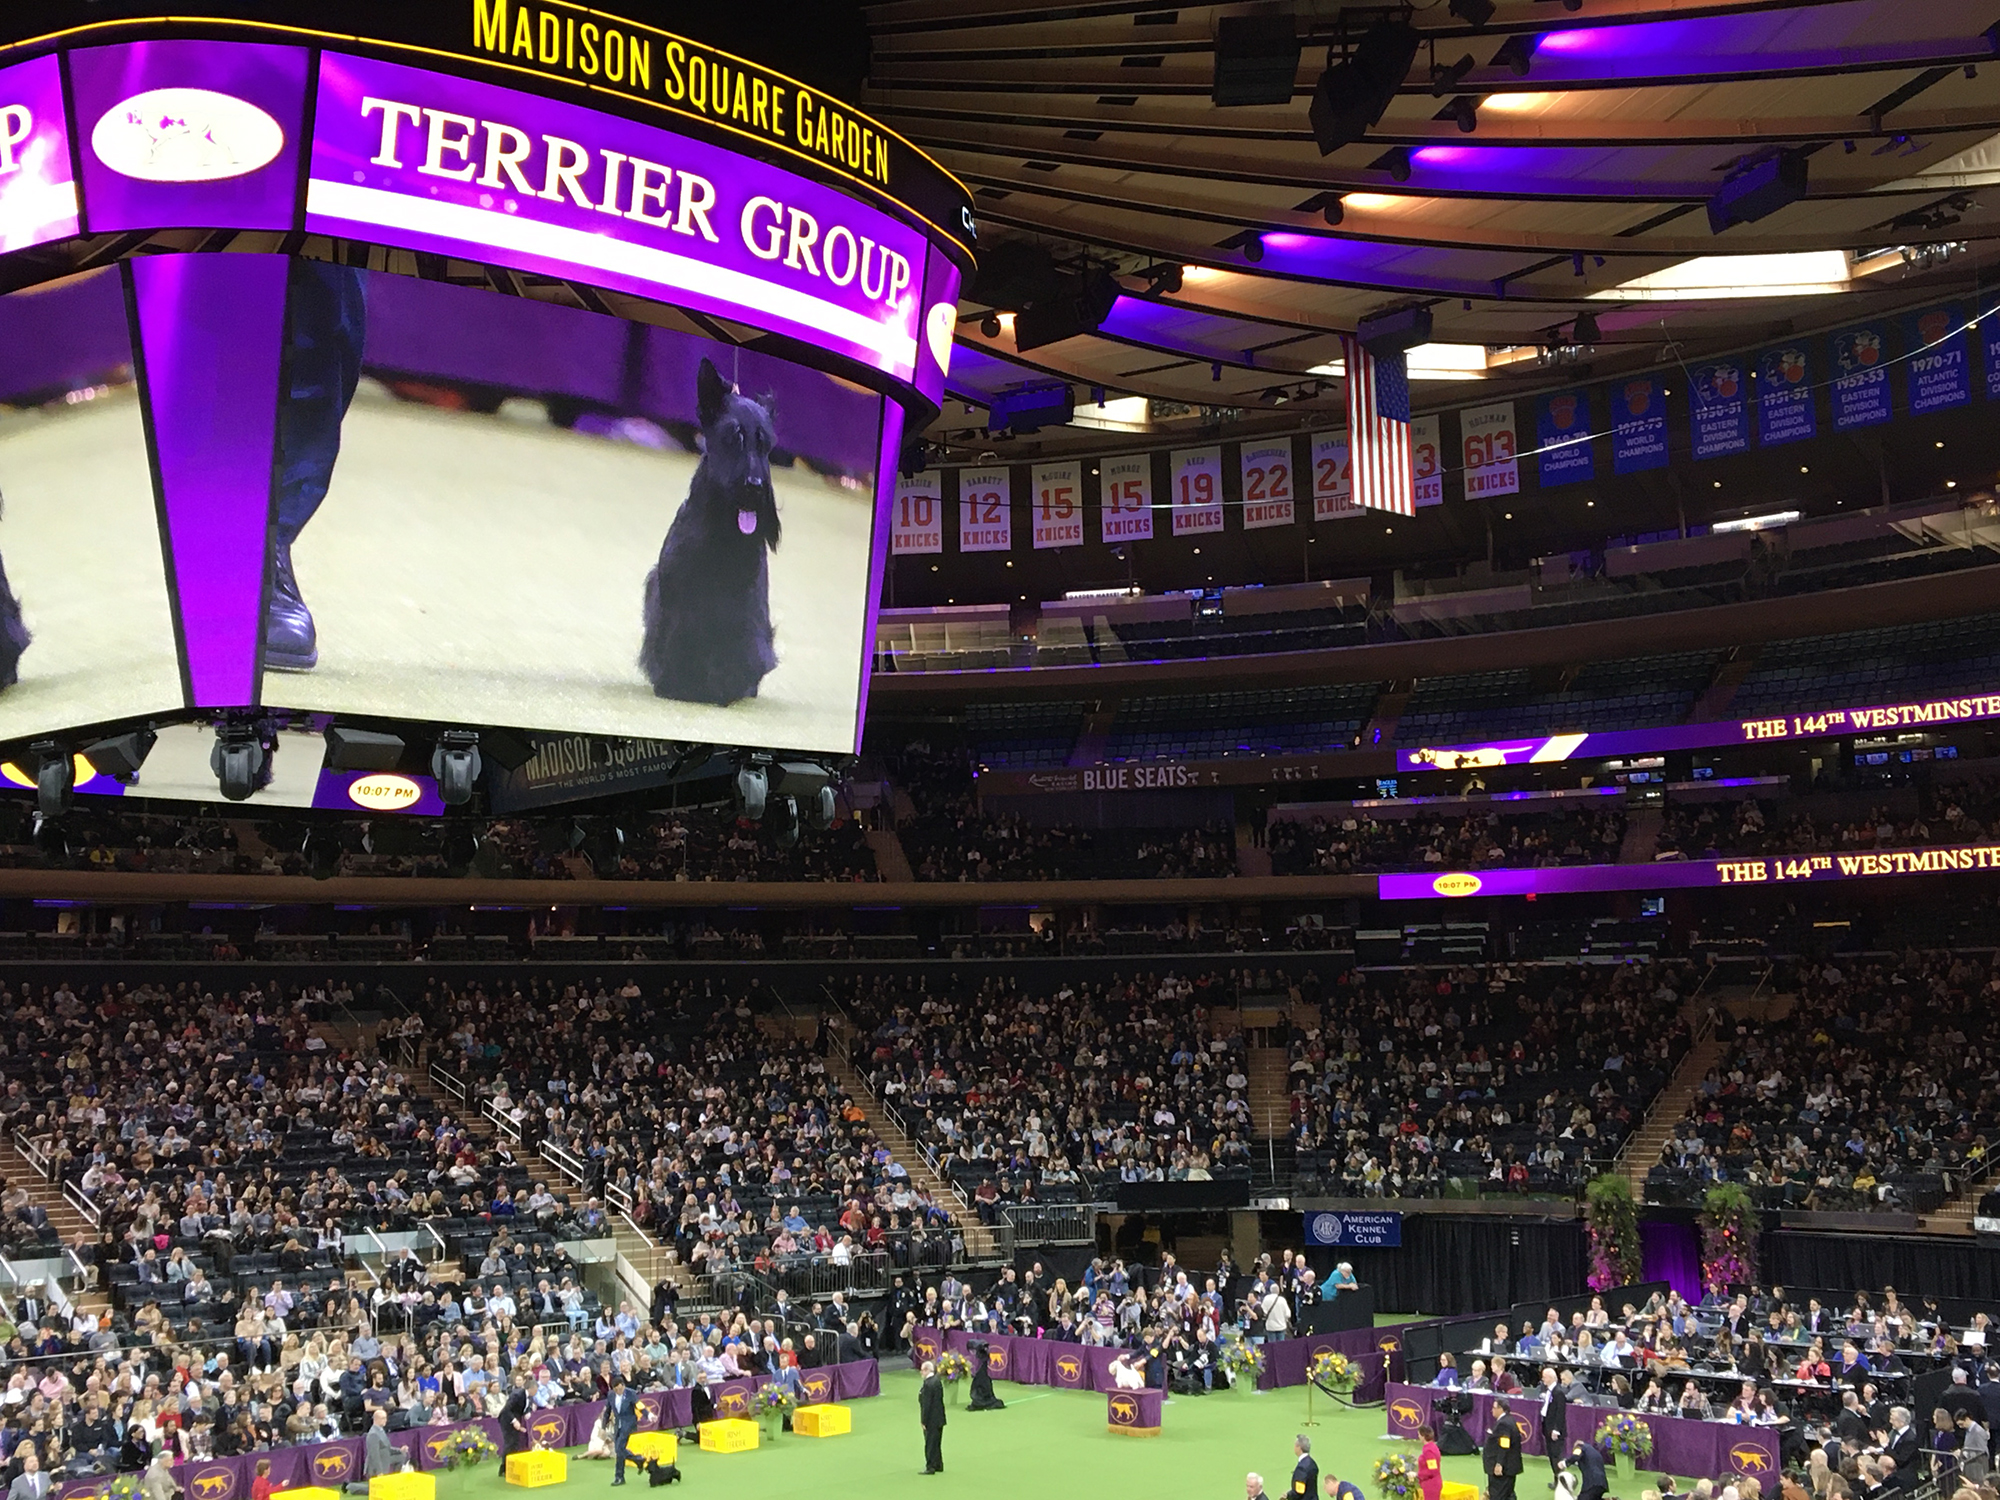 Jumbutron showing Scottish Terrier at Westminster Terrier Group at MSG